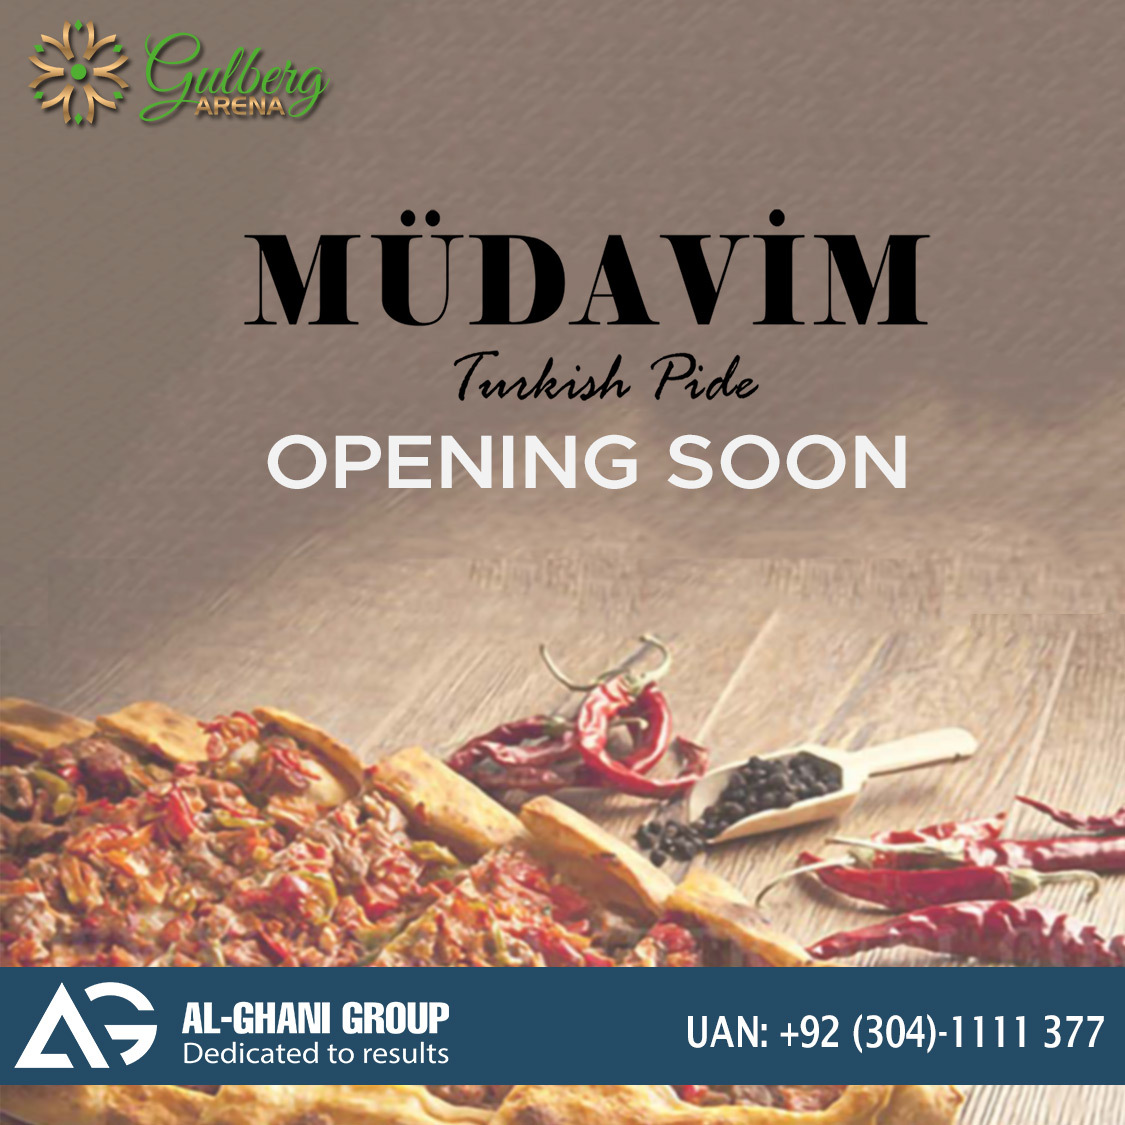 Mudavim outlet in gulberg arena mall at Islamabad